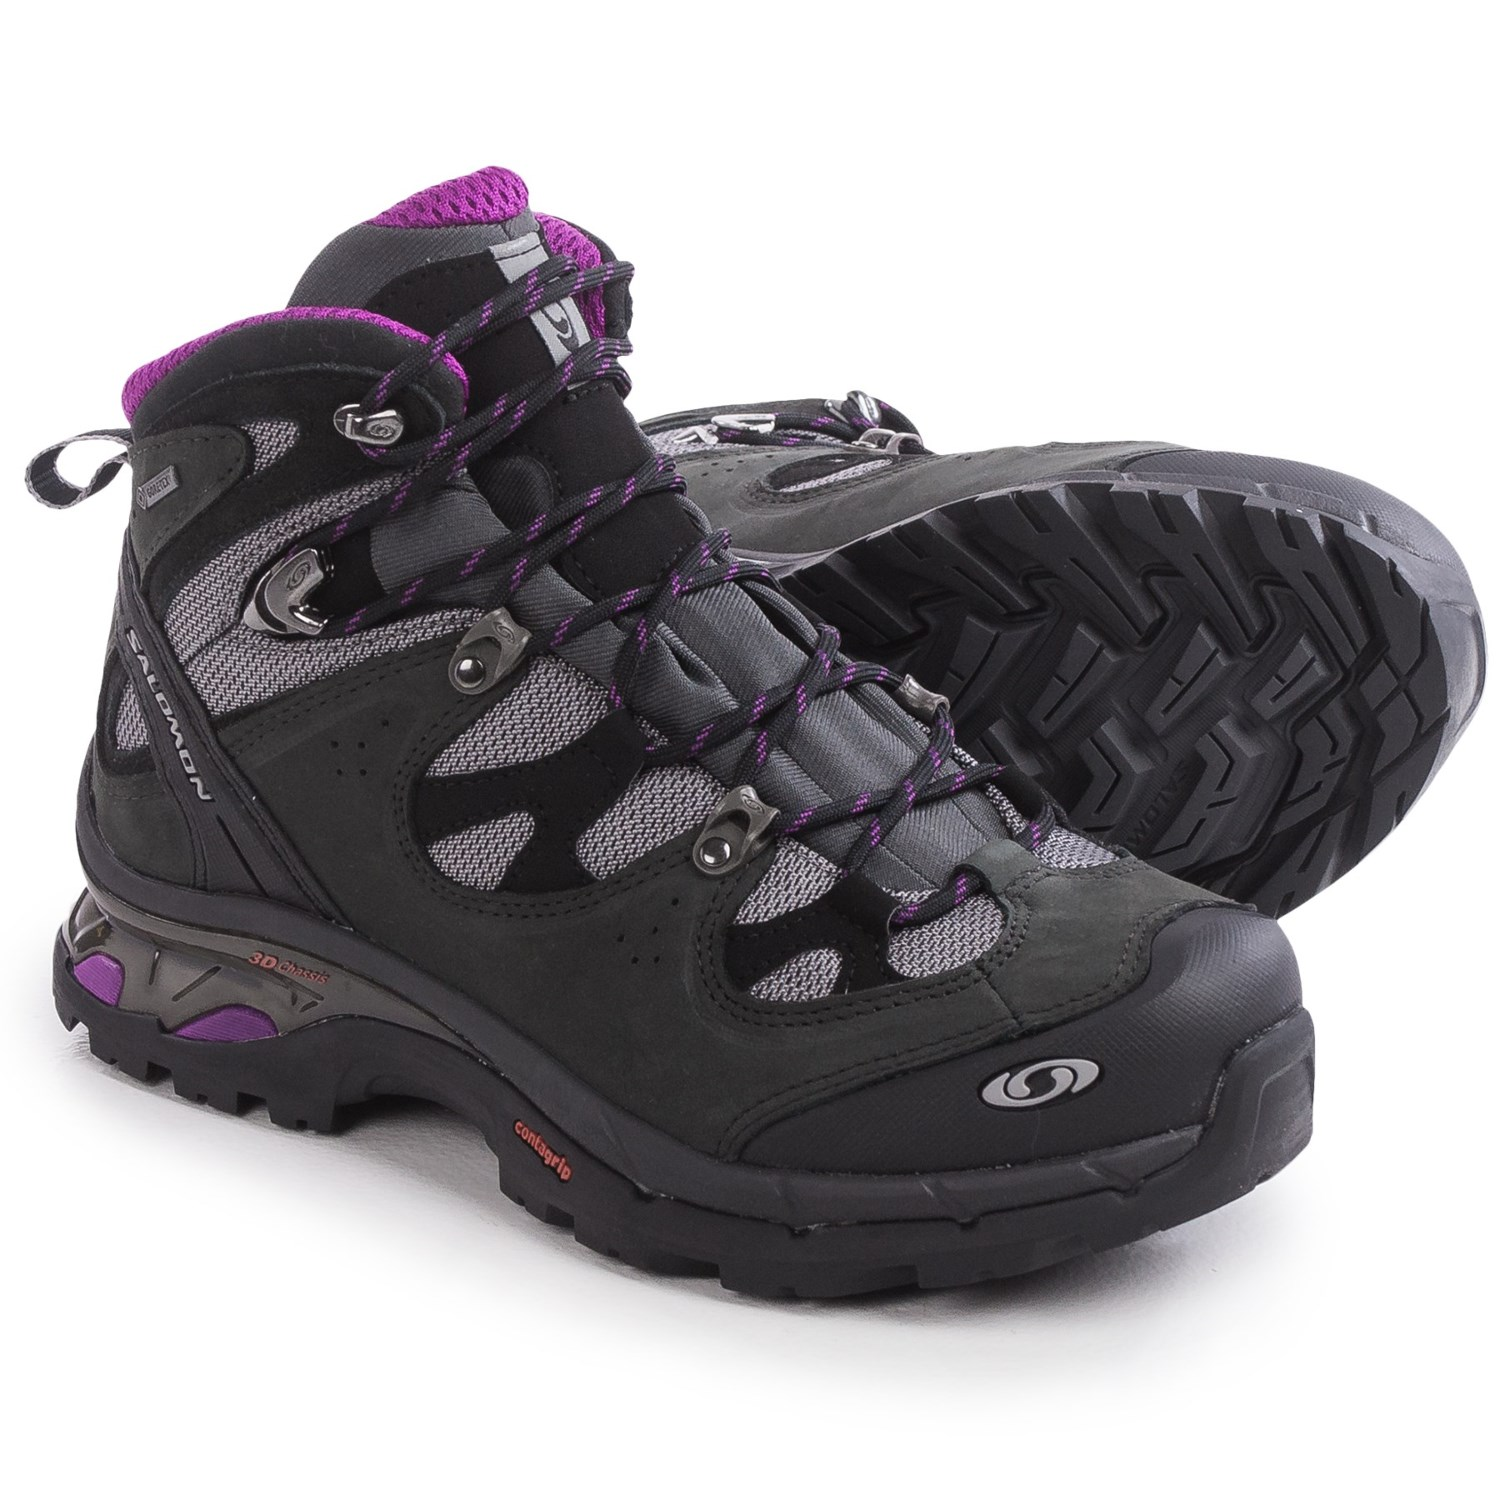 salomon comet 3d tex 174 hiking boots for save 60